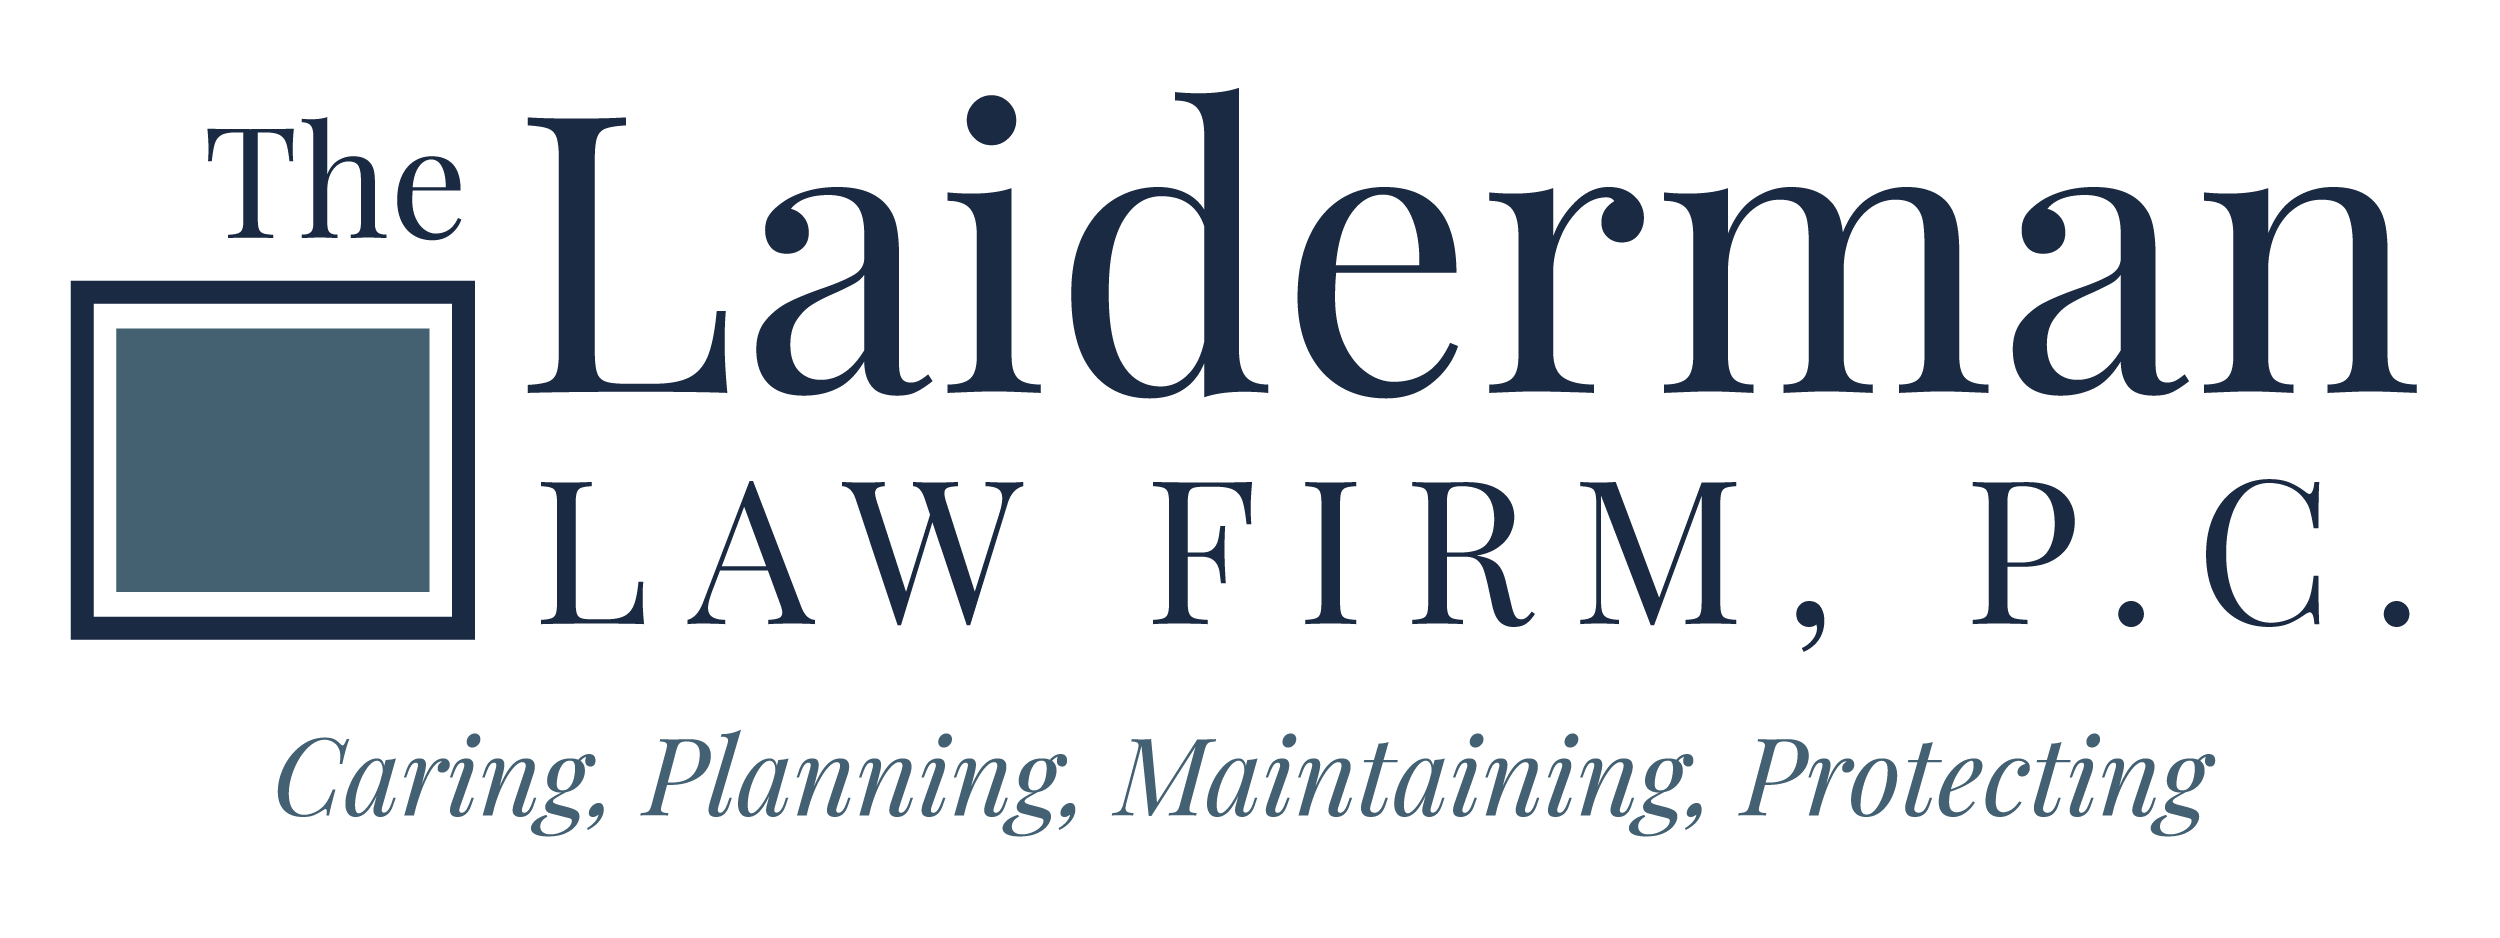 The Laiderman Law Firm, P.C. Logo